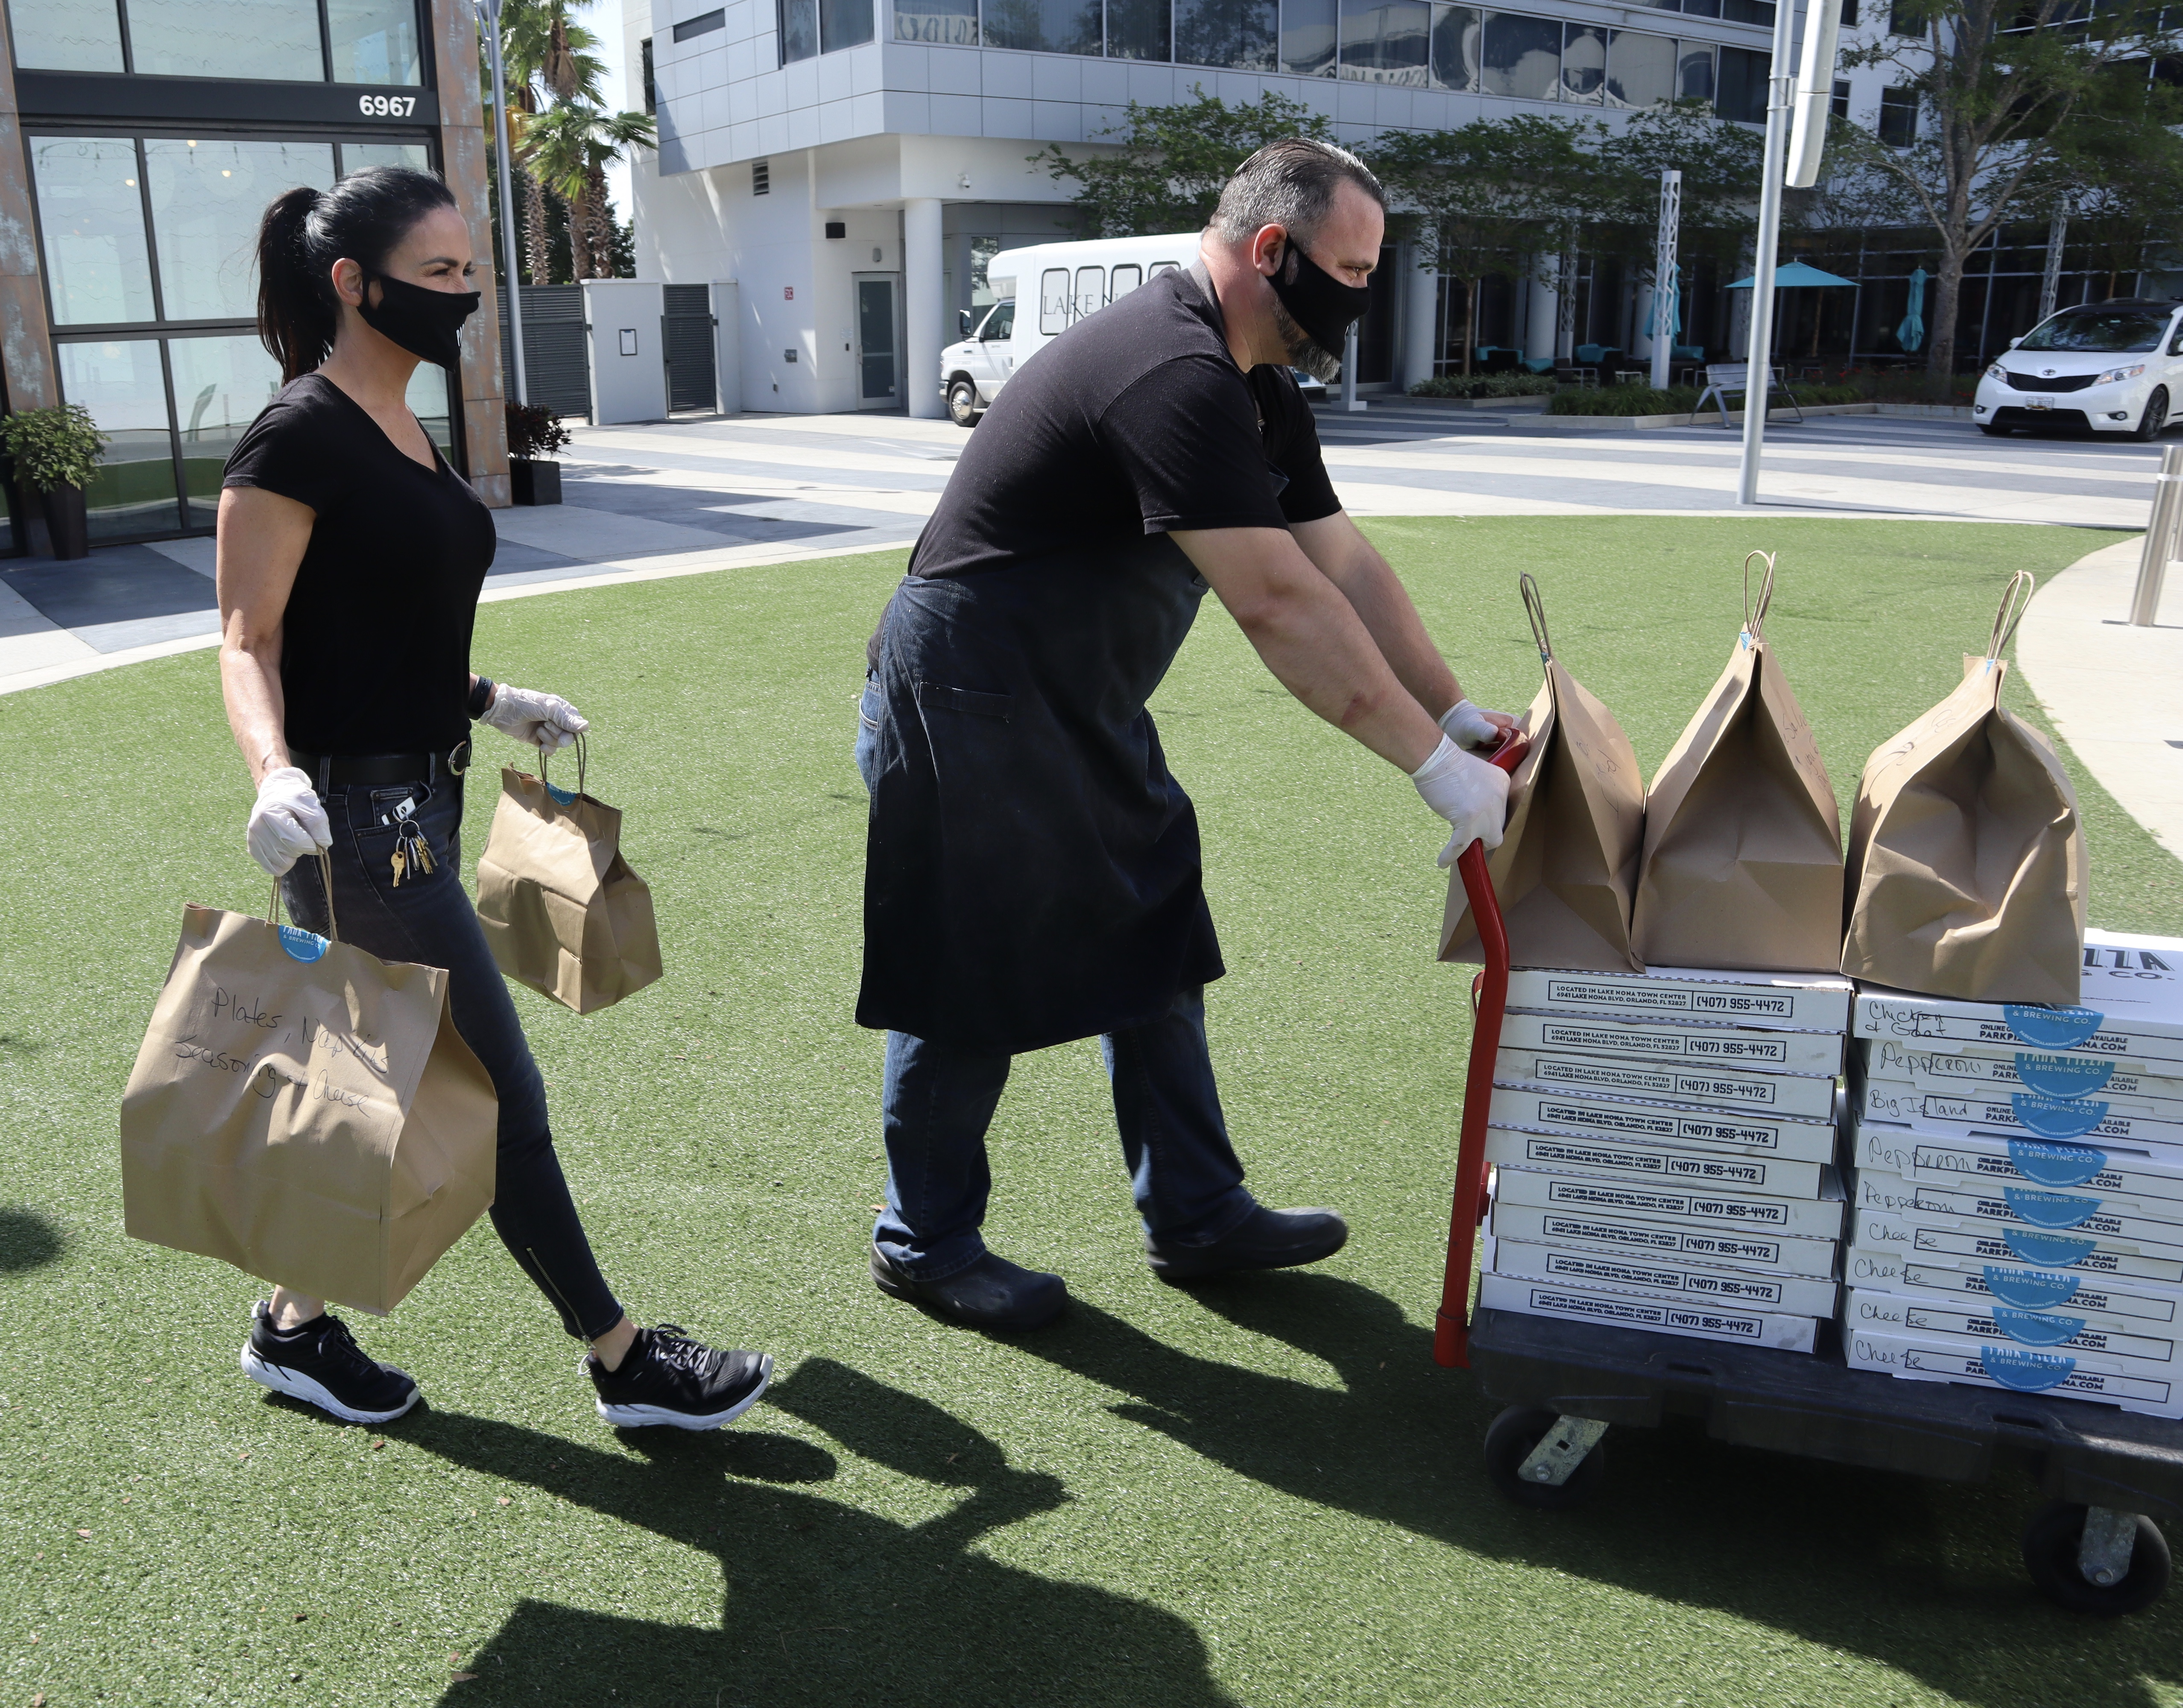 Park Pizza & Brewing Company employees roll out a cart full of pizzas to be delivered via self-driving shuttle tohealthcare workers in Orlando, Florida.